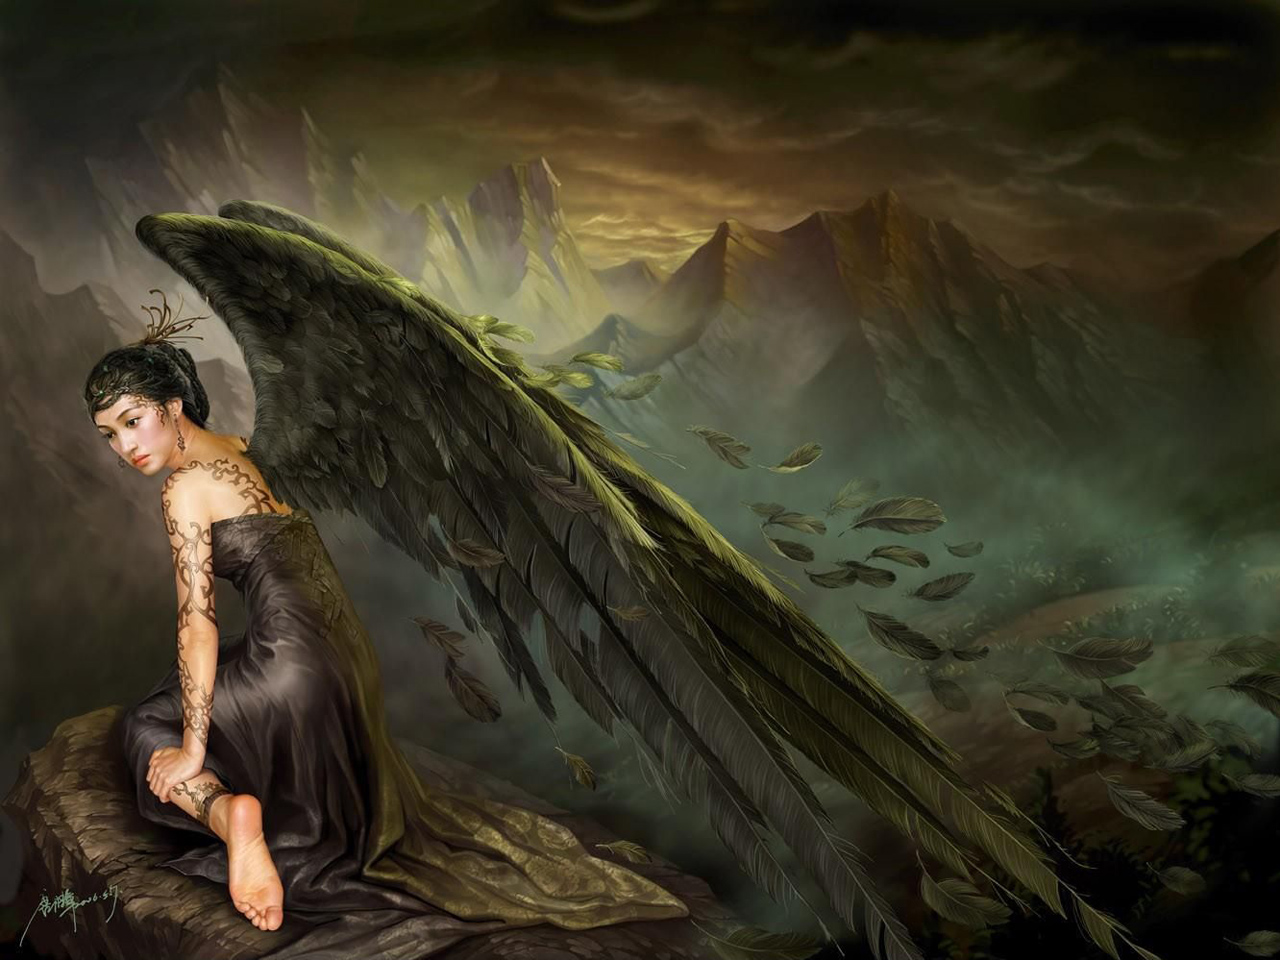 Beautiful Angels wallpapers PIXHOME 1280x960